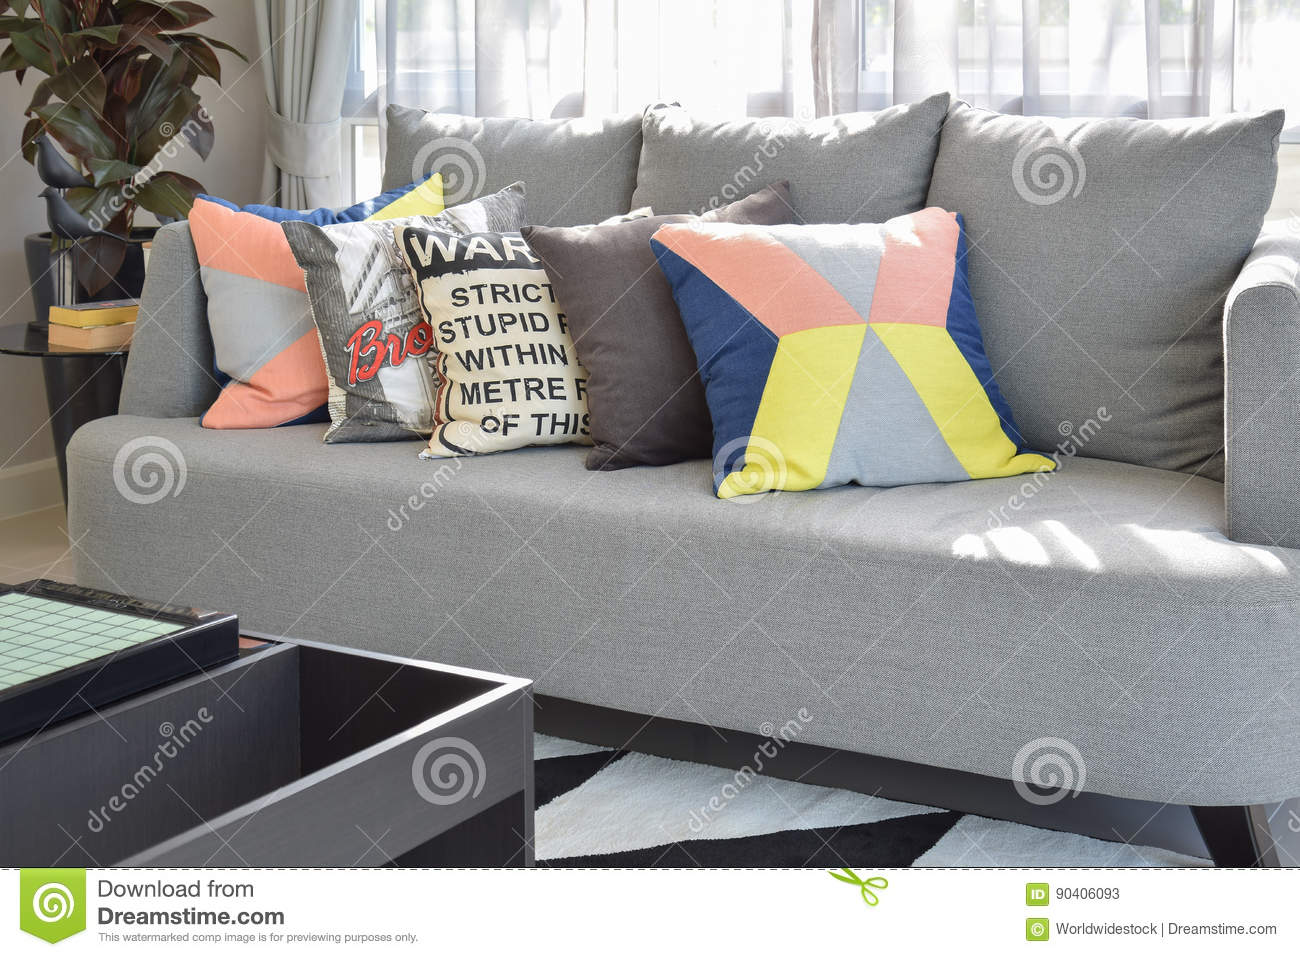 Magnificent Modern Living Room Design With Colorful Pillows On Sofa Cjindustries Chair Design For Home Cjindustriesco